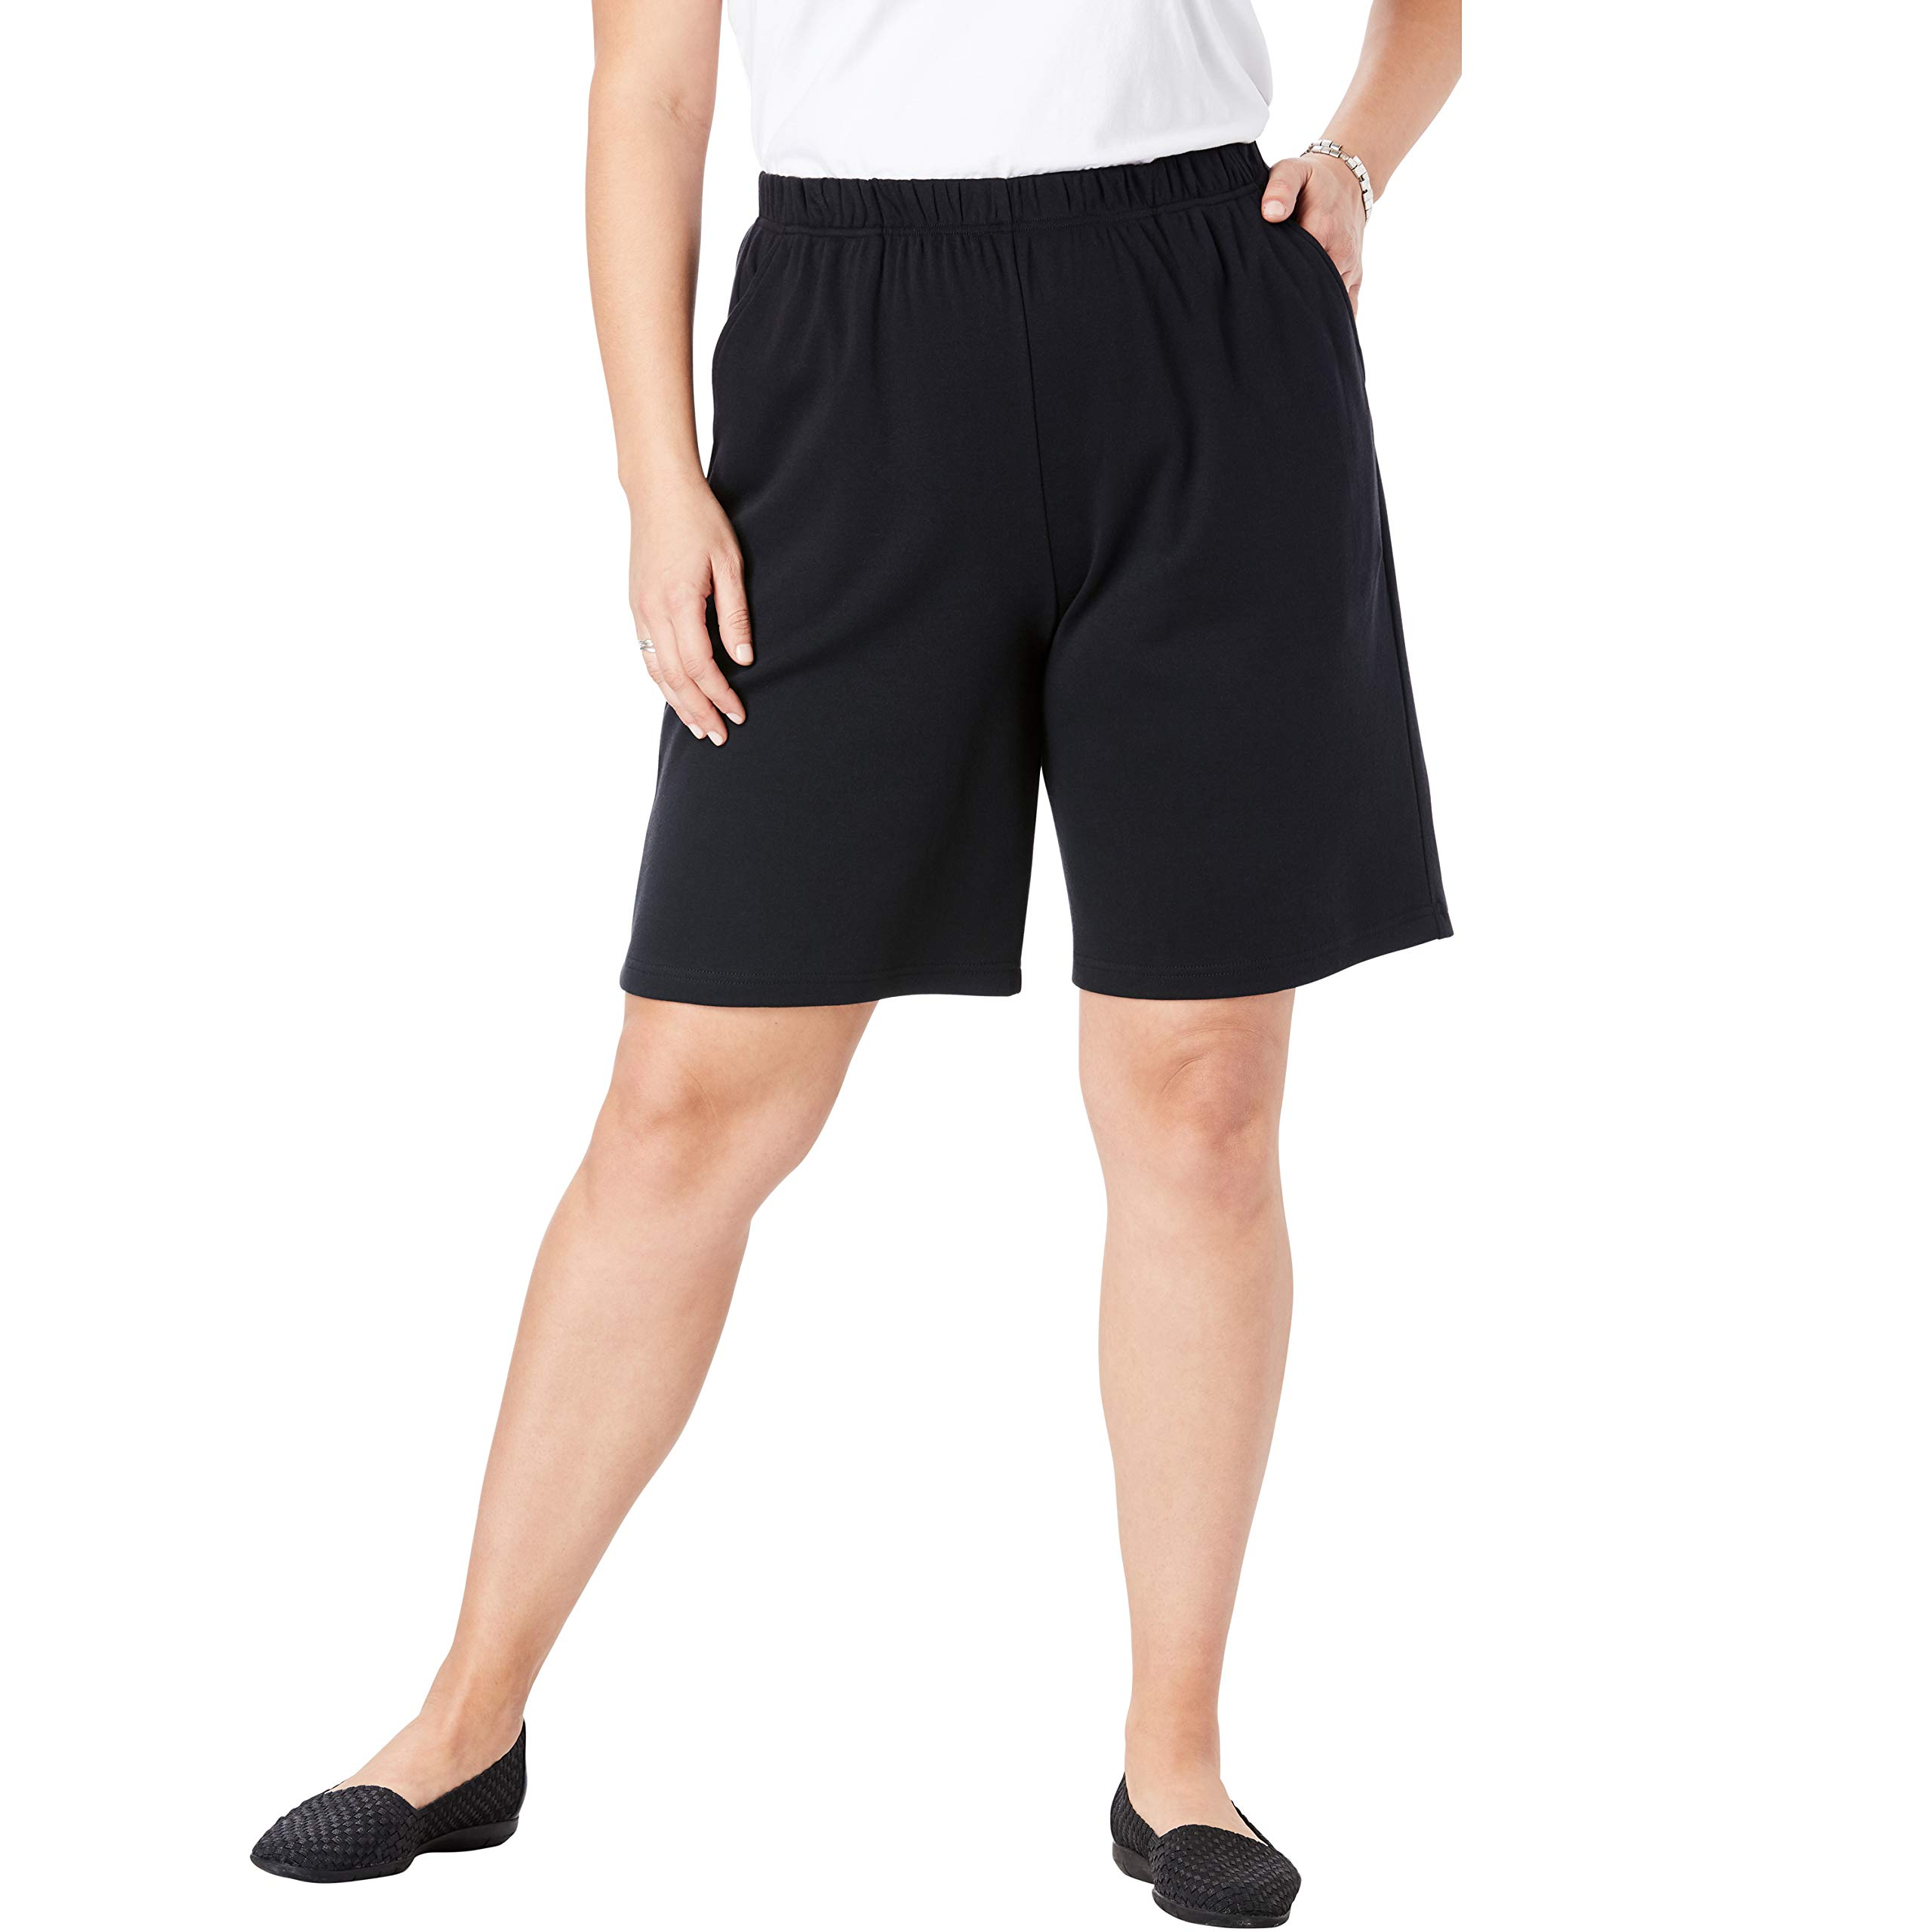 Woman Within Women's Plus Size 7-Day Knit Short - Black, 1X by Woman Within